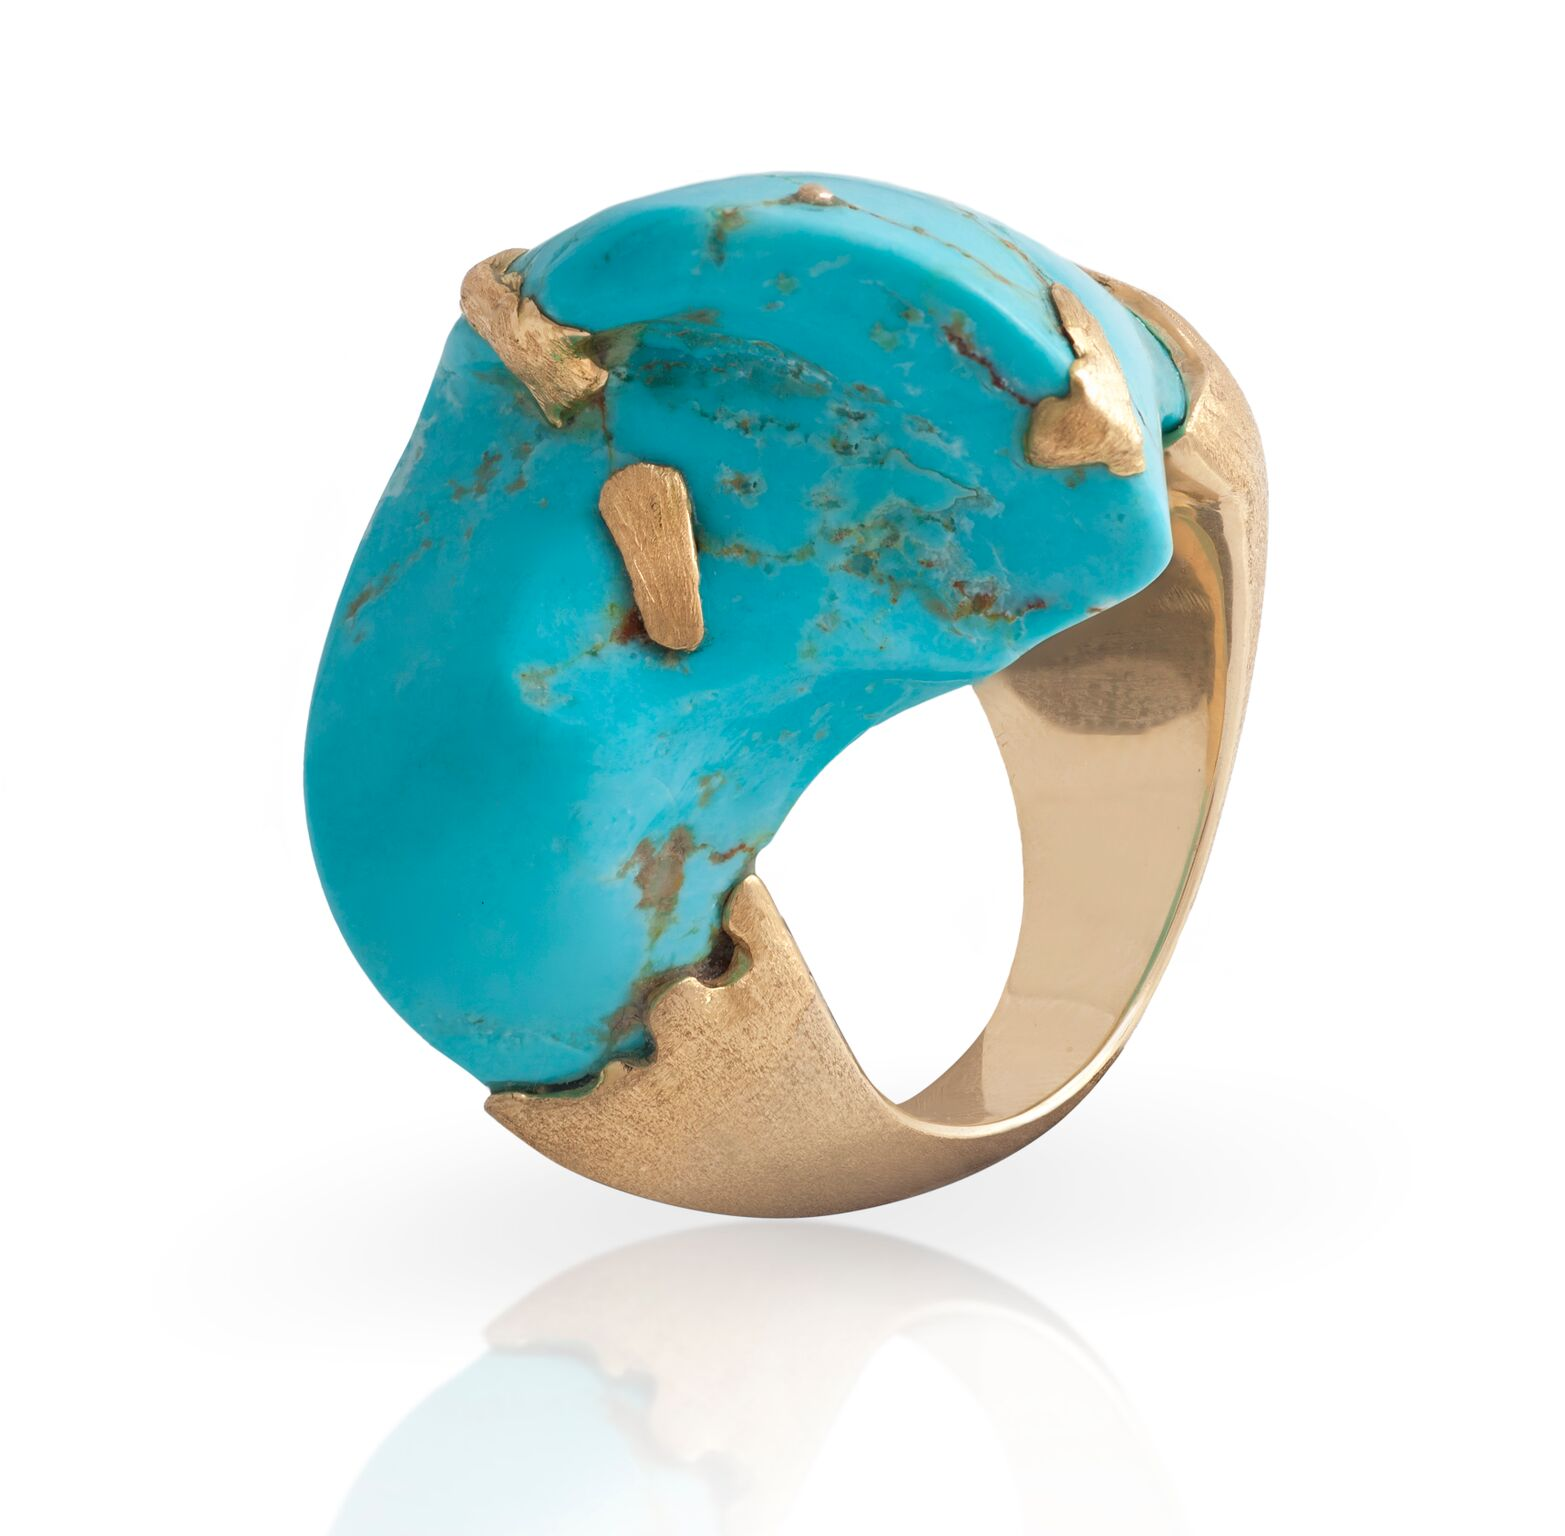 Sleeping beauty turquoise (Arizona, USA) and melted 18k yellow gold, set in a 18k yellow gold ring